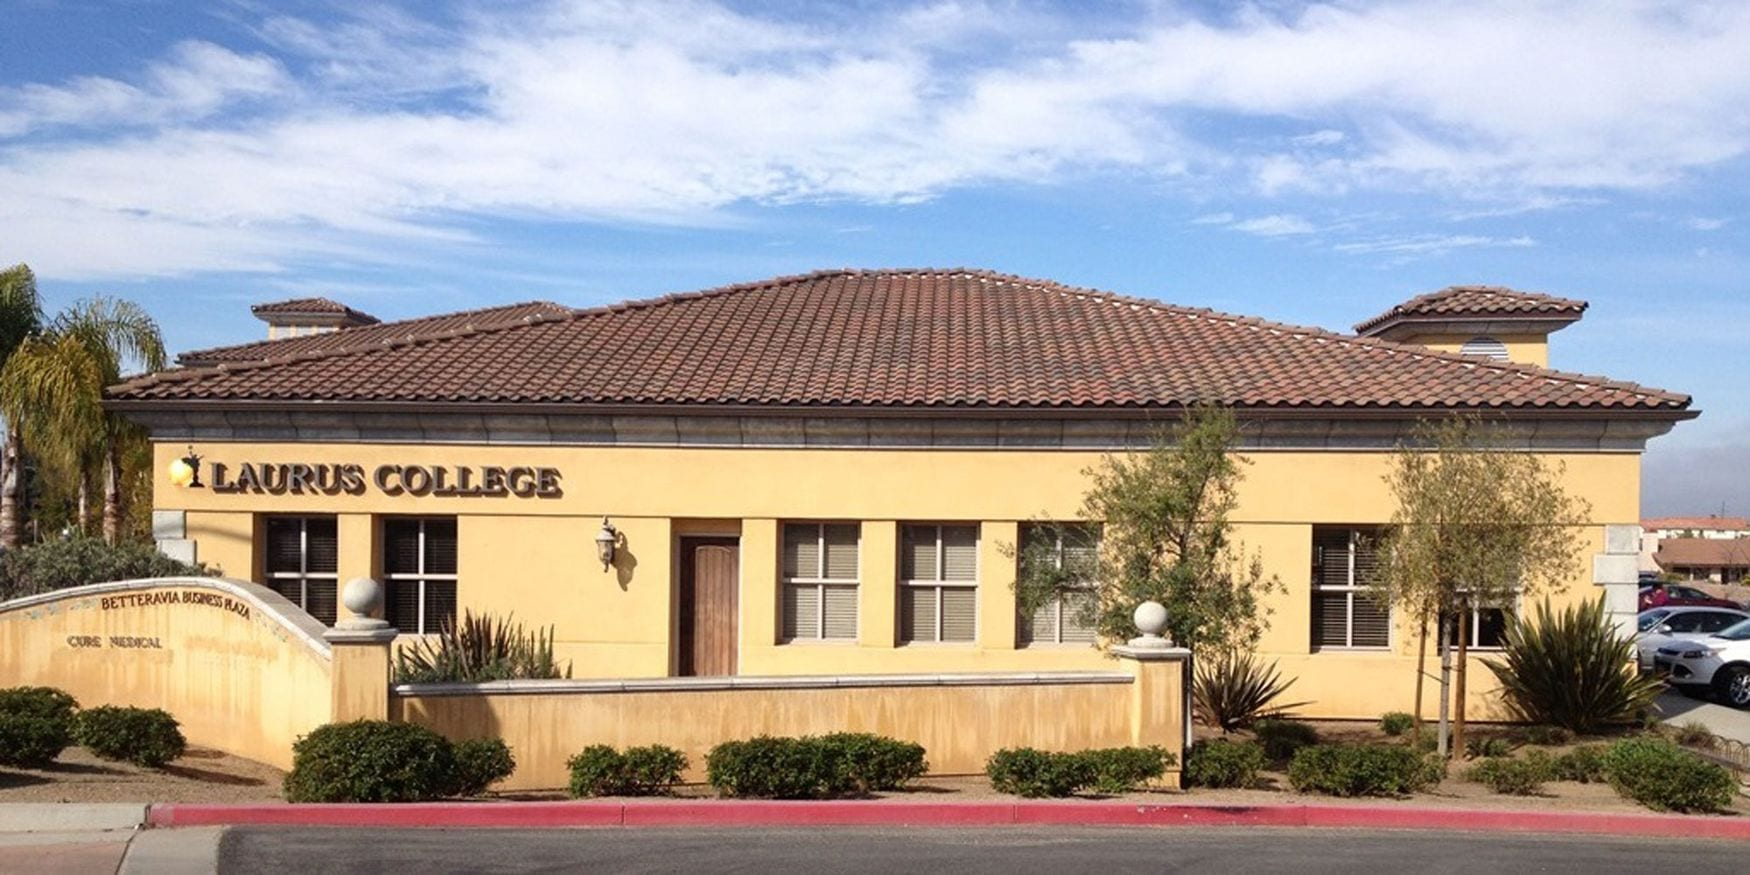 Photo of the Laurus College building in Santa Maria that houses the administrative offices